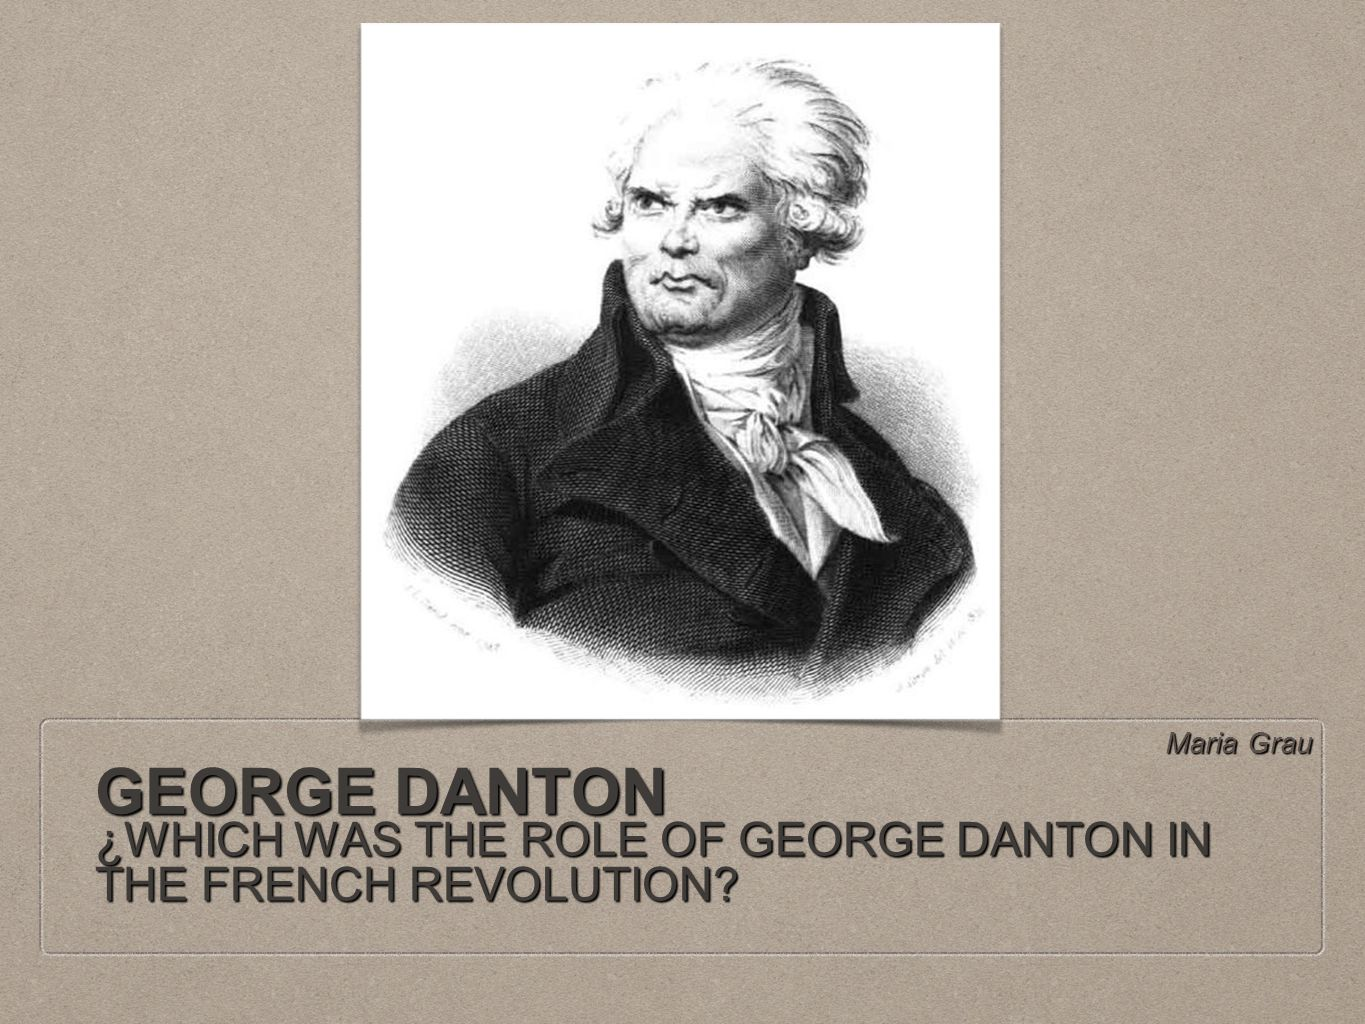 GEORGE DANTON ¿WHICH WAS THE ROLE OF GEORGE DANTON IN THE FRENCH REVOLUTION? Maria Grau